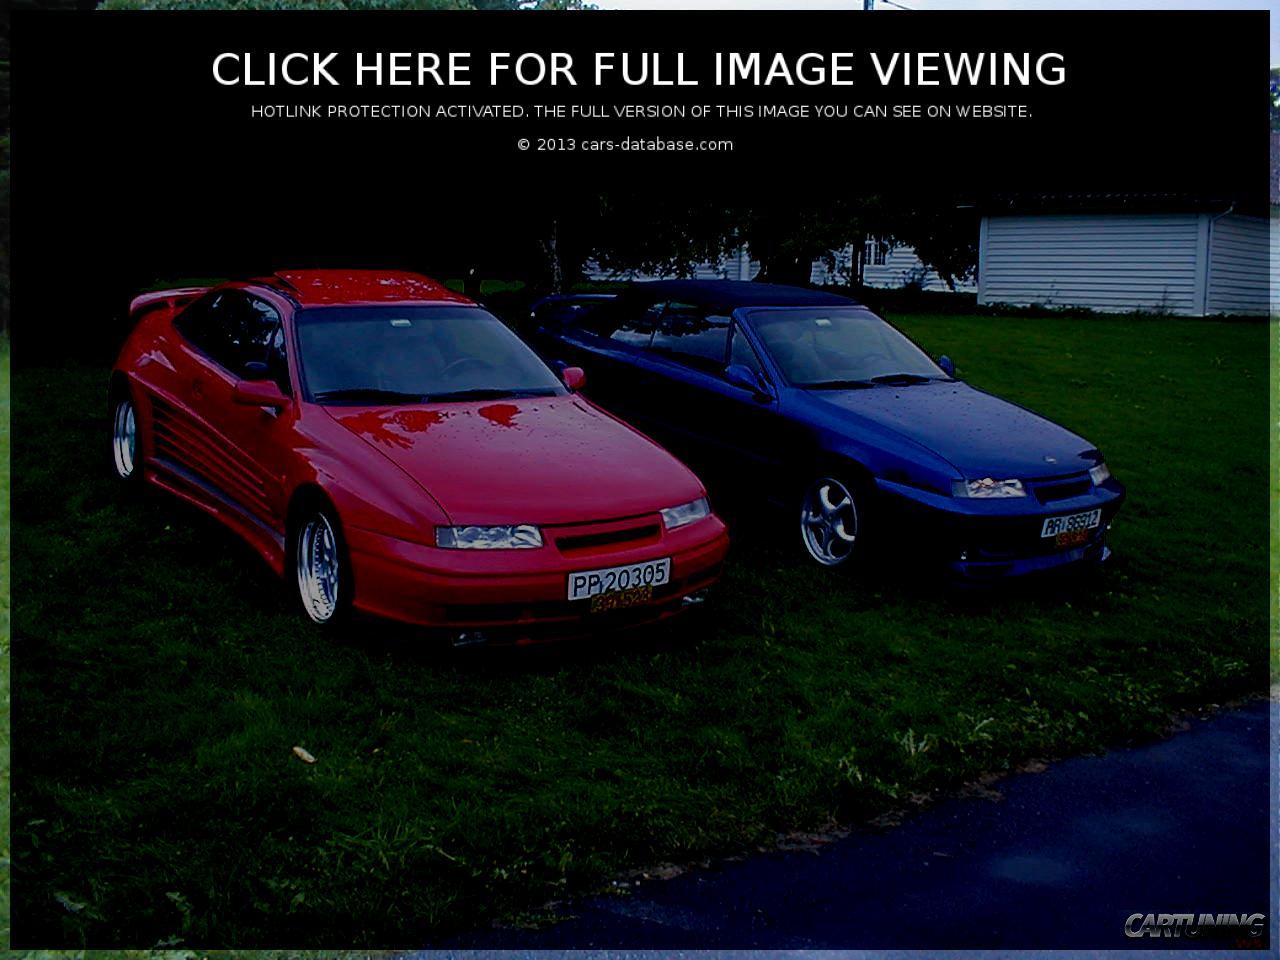 Opel Calibra: Information about model, images gallery and complete ...